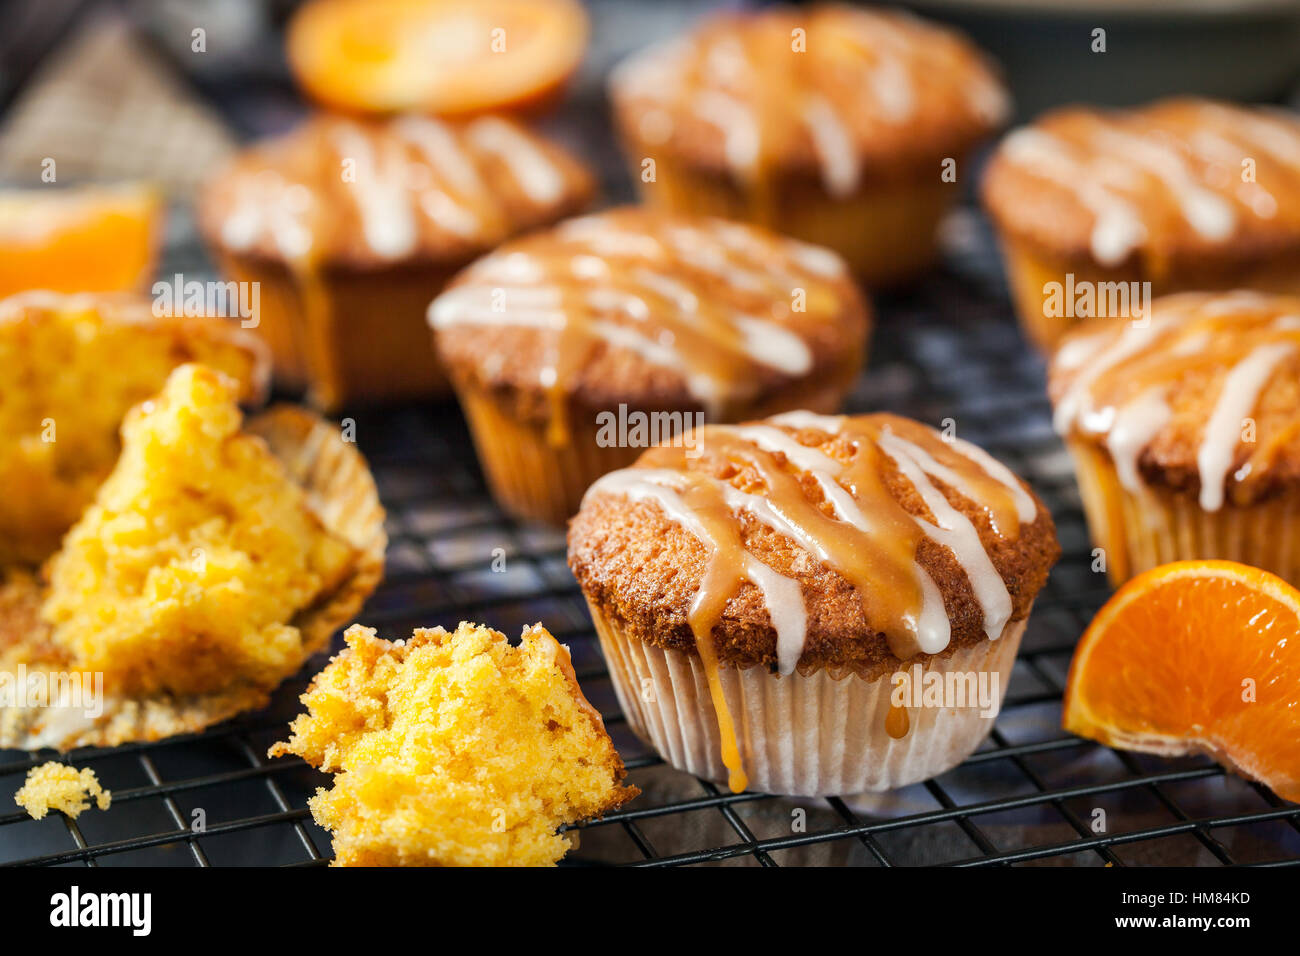 Carrot tangerine cupcakes decorated with glaze and caramel topping - Stock Image